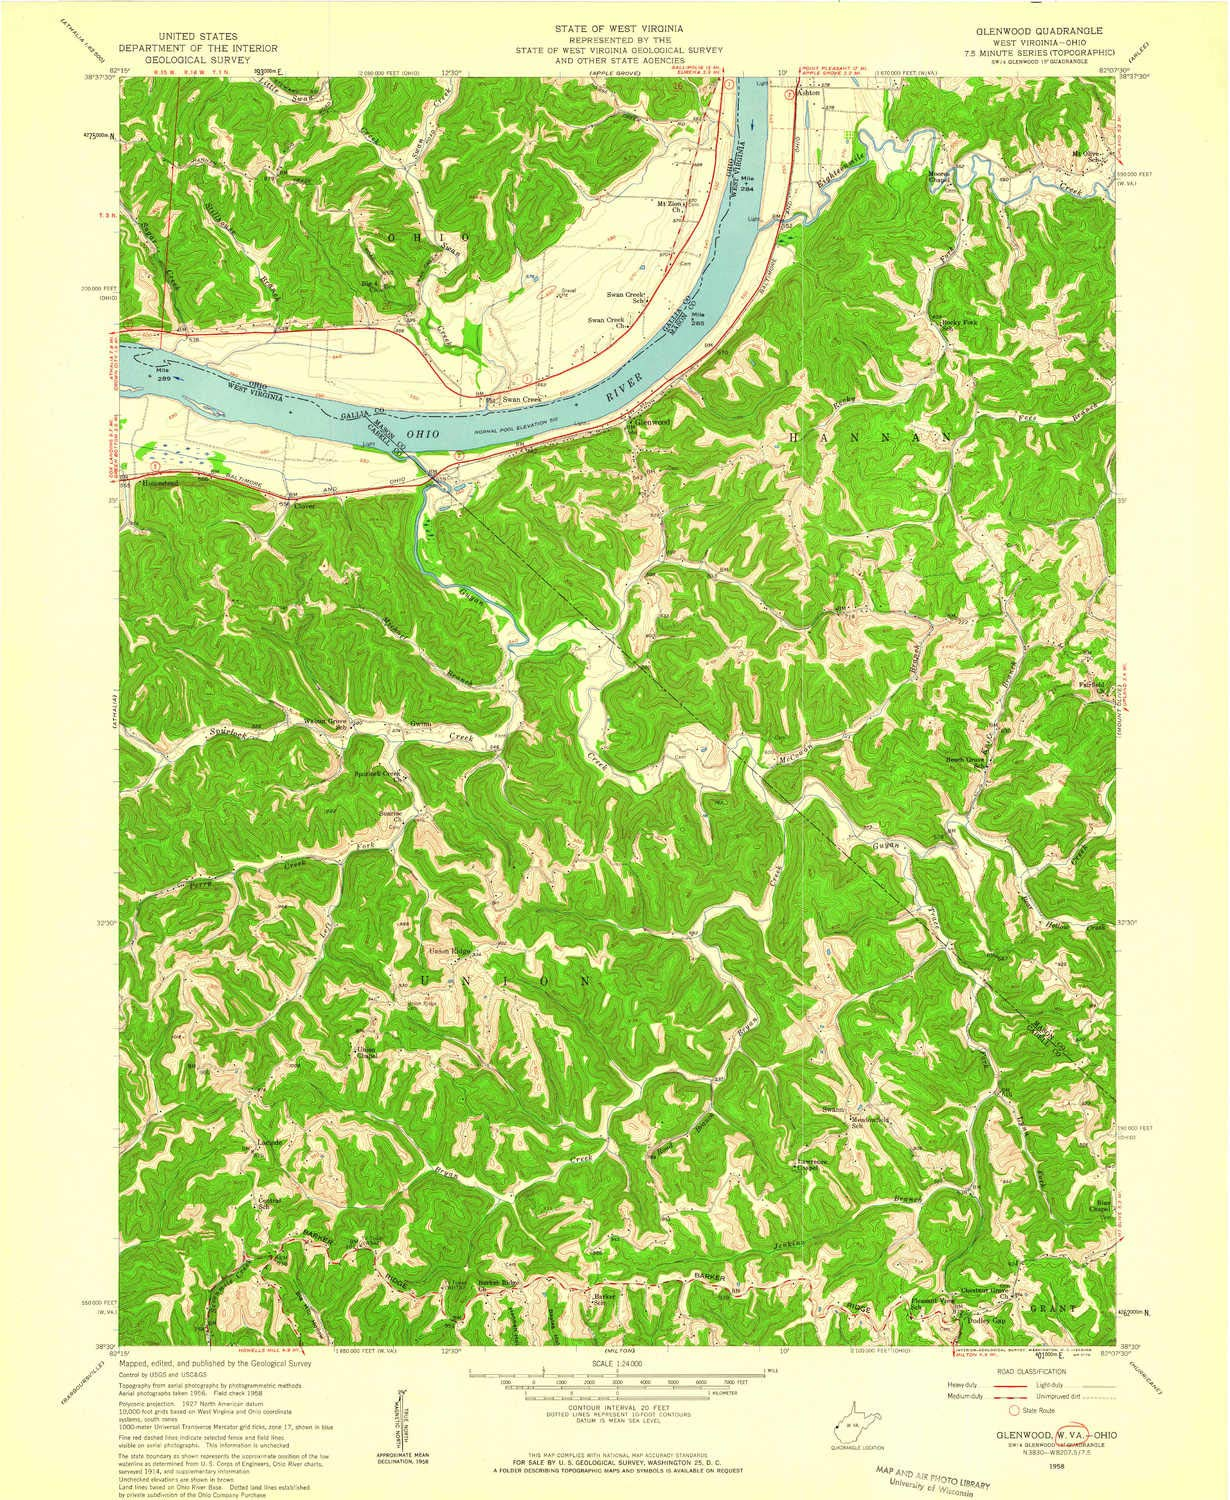 26.9 x 22.1 in 7.5 X 7.5 Minute 1958 Historical YellowMaps Glenwood WV topo map 1:24000 Scale Updated 1959